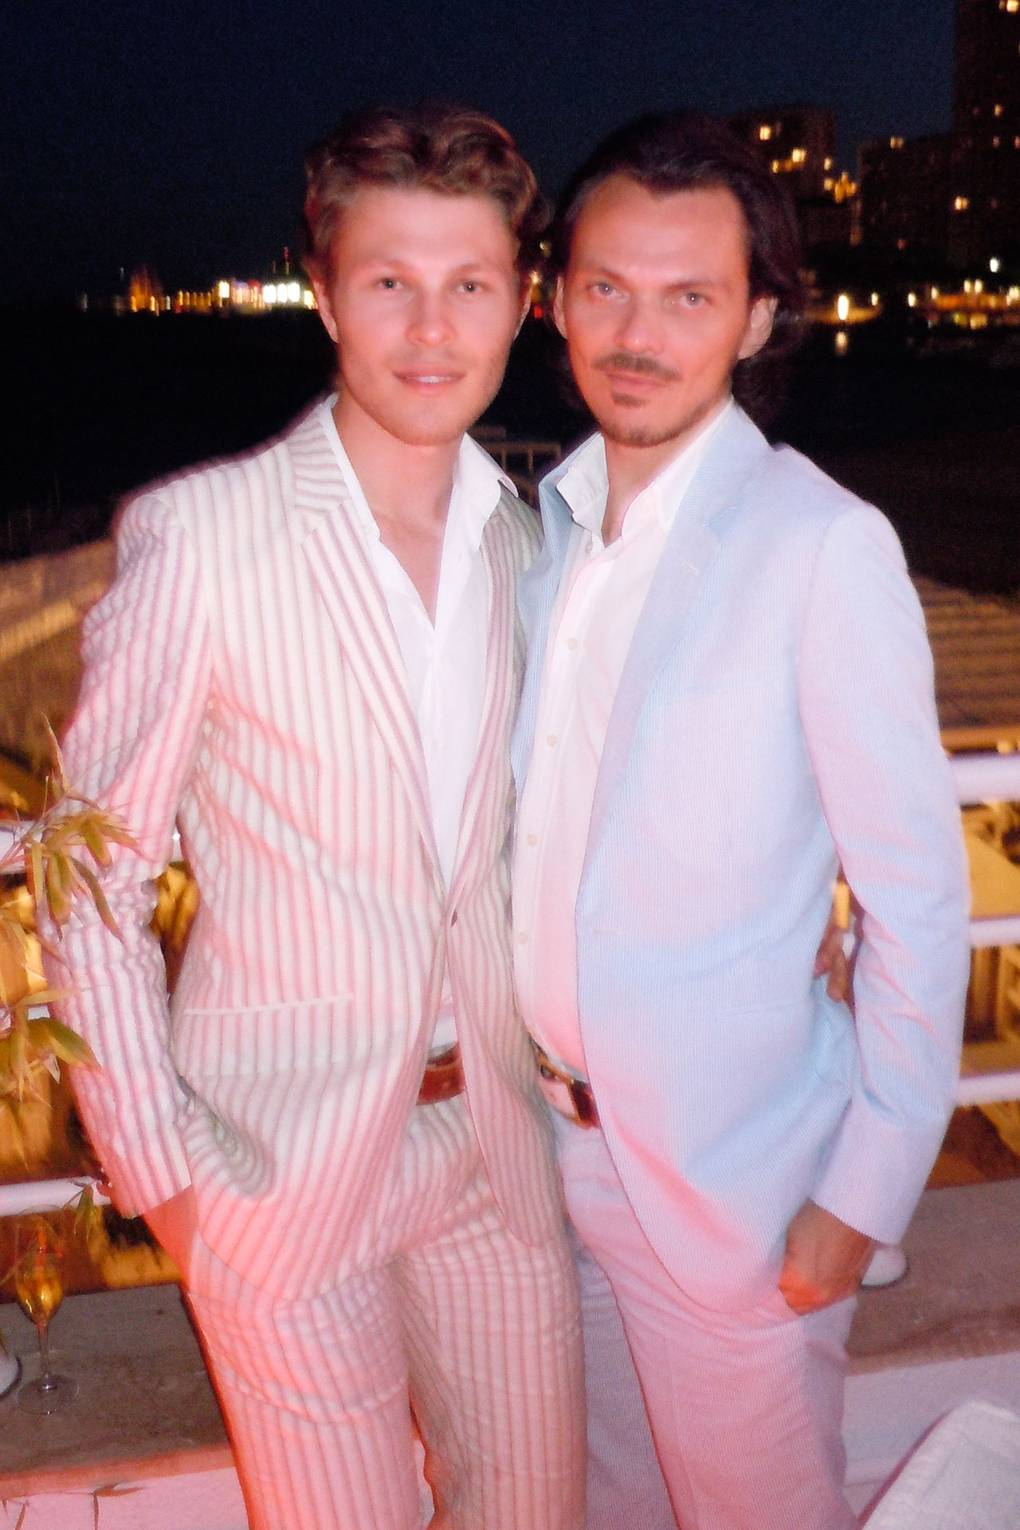 Monaco fashion show Matthew Williamson Stephen Baccari | British Vogue